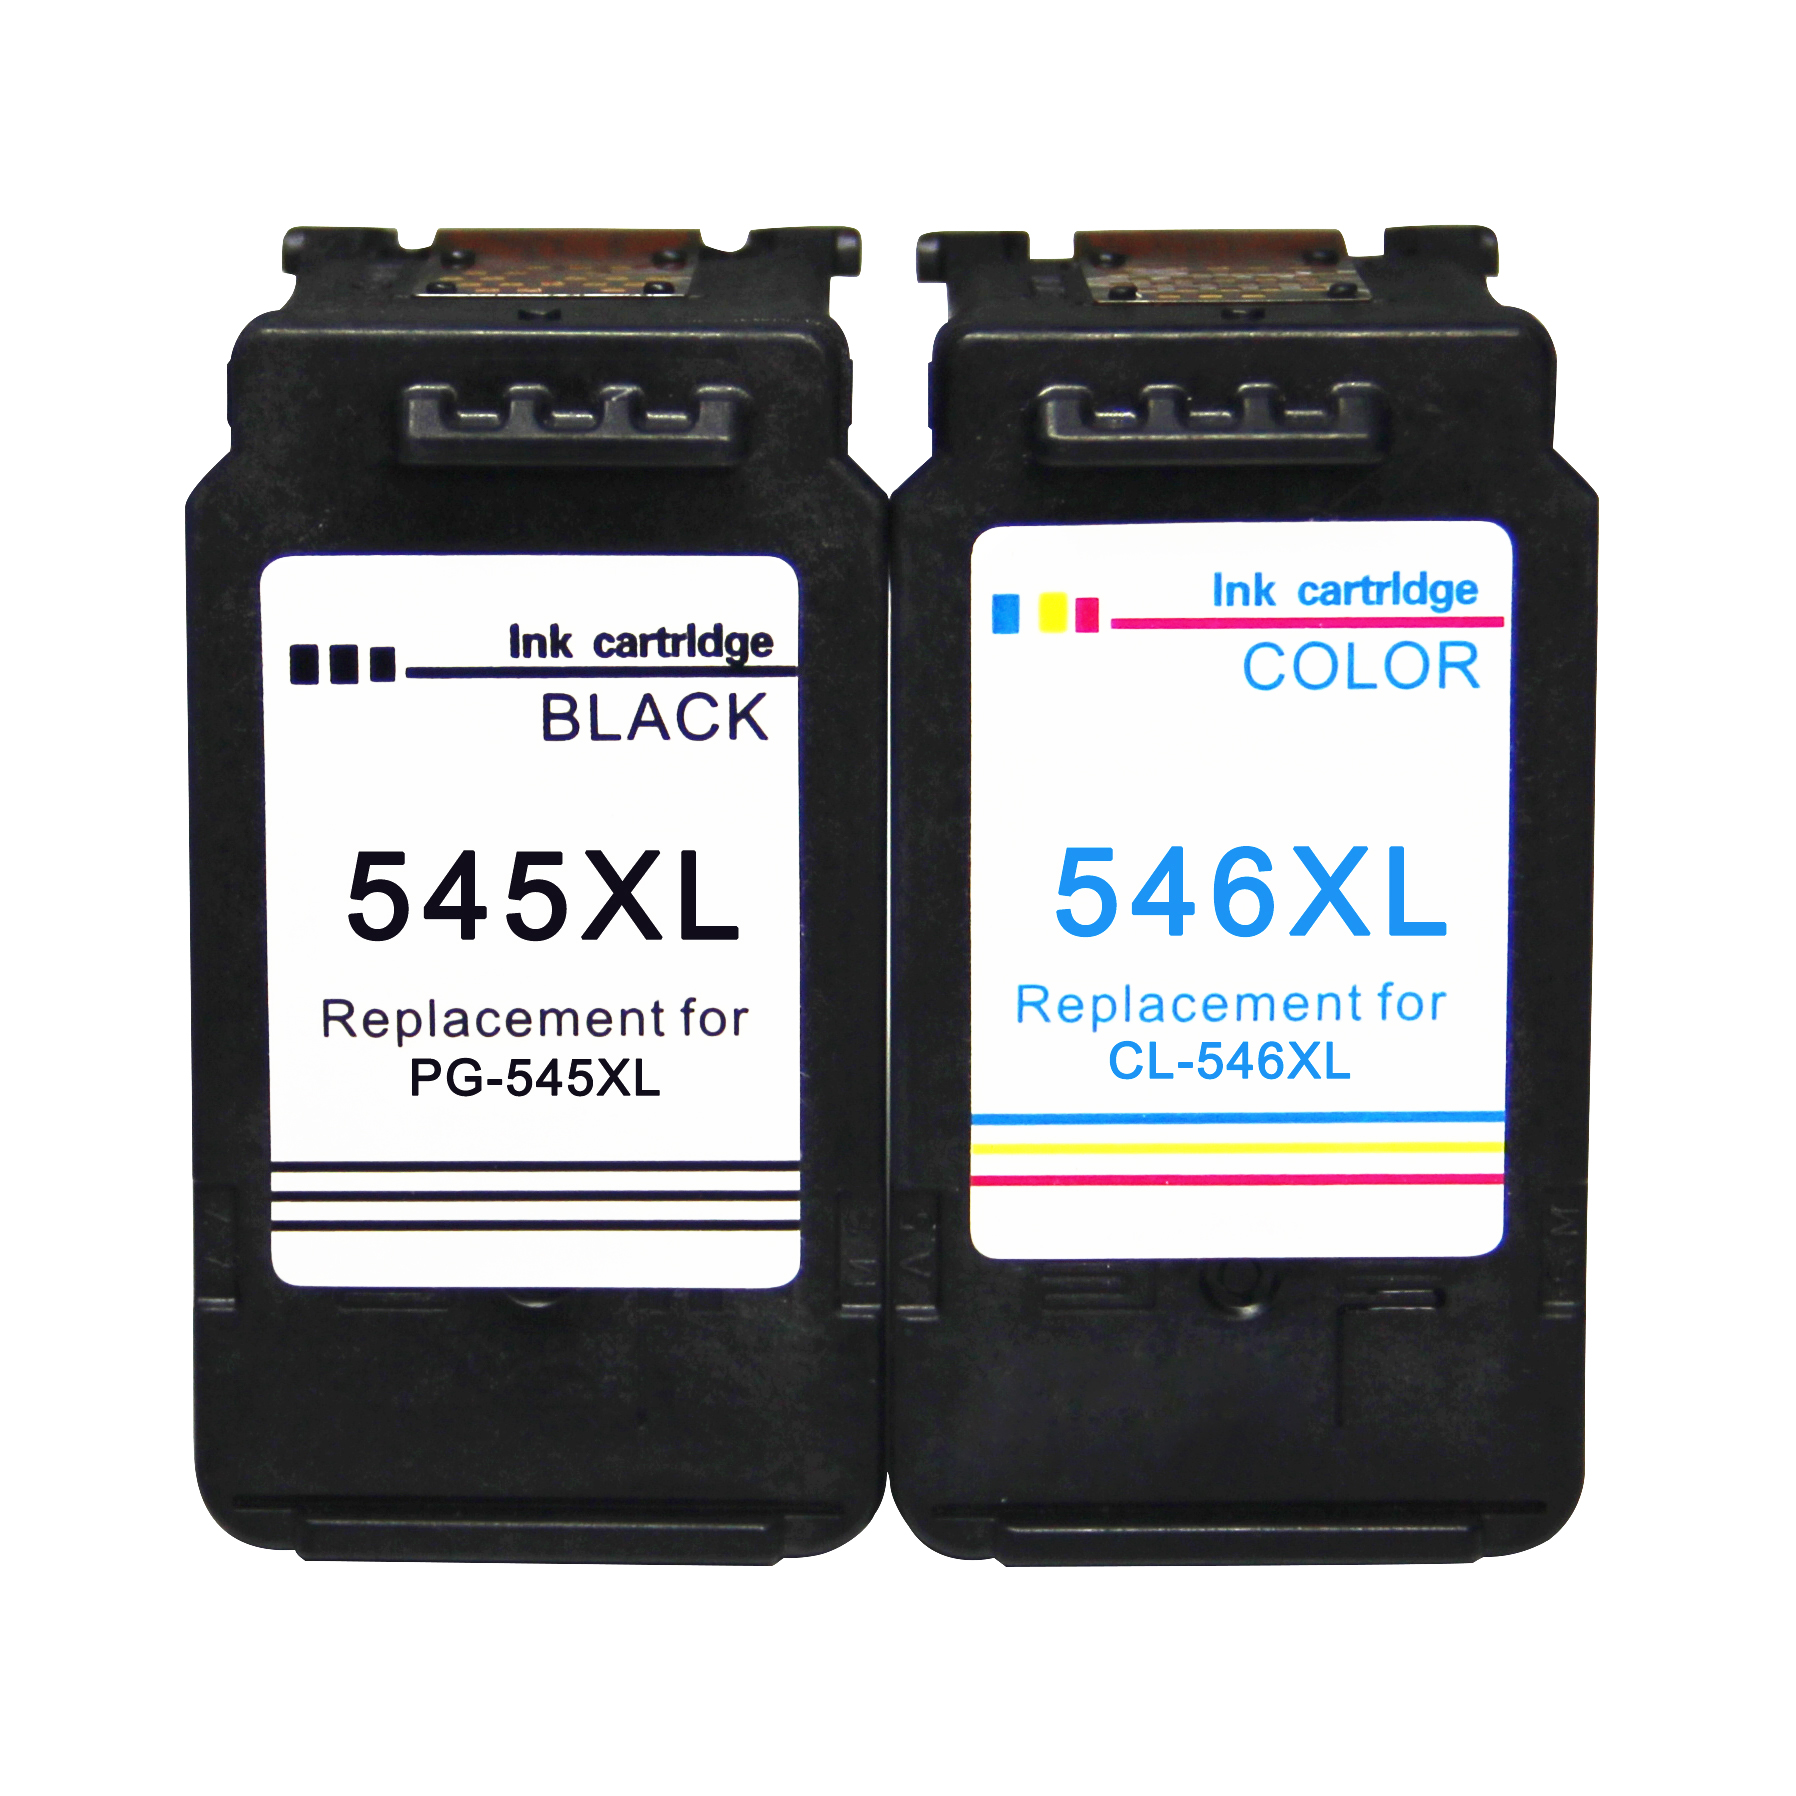 Compatibel PG-545XL CL-546XL Voor Canon Pg 545 Cl 546 Inkt Cartridges Canon Pixma MG2550 3050 MX495 IP2850 TS3150 TS3151